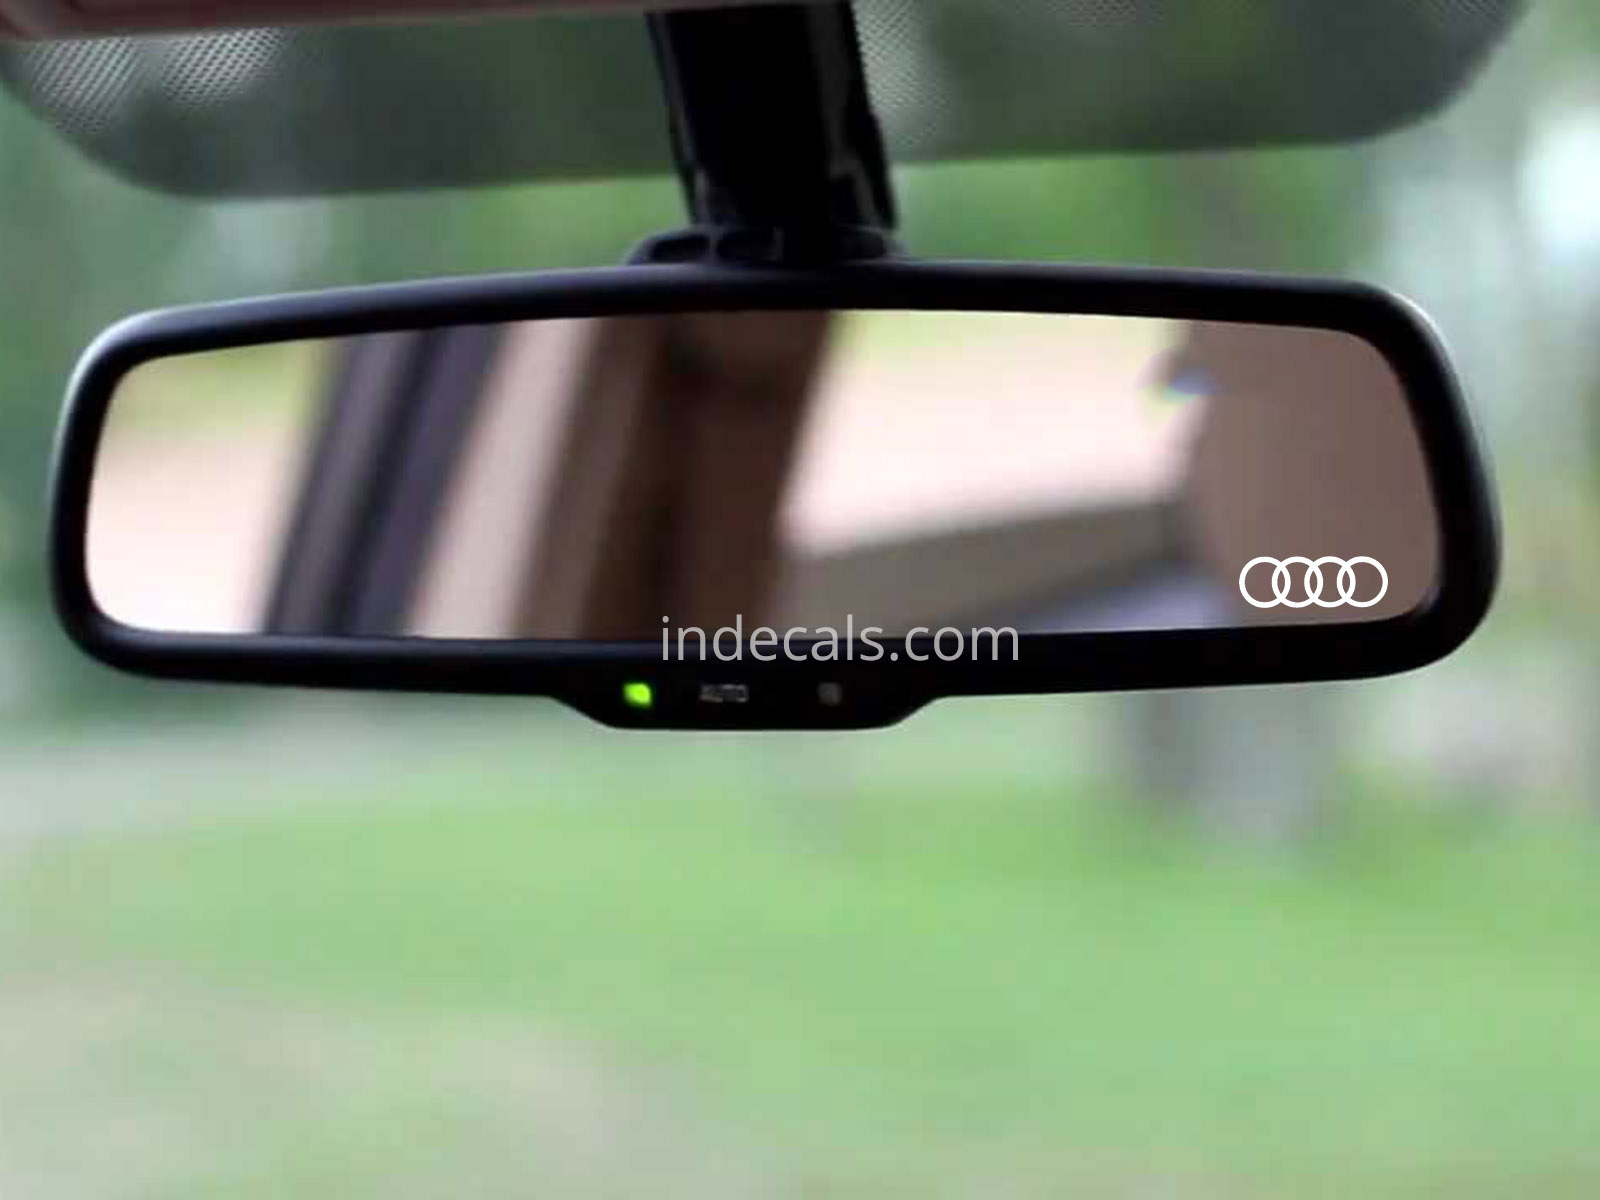 3 x Audi Rings Stickers for Interior Mirror - White